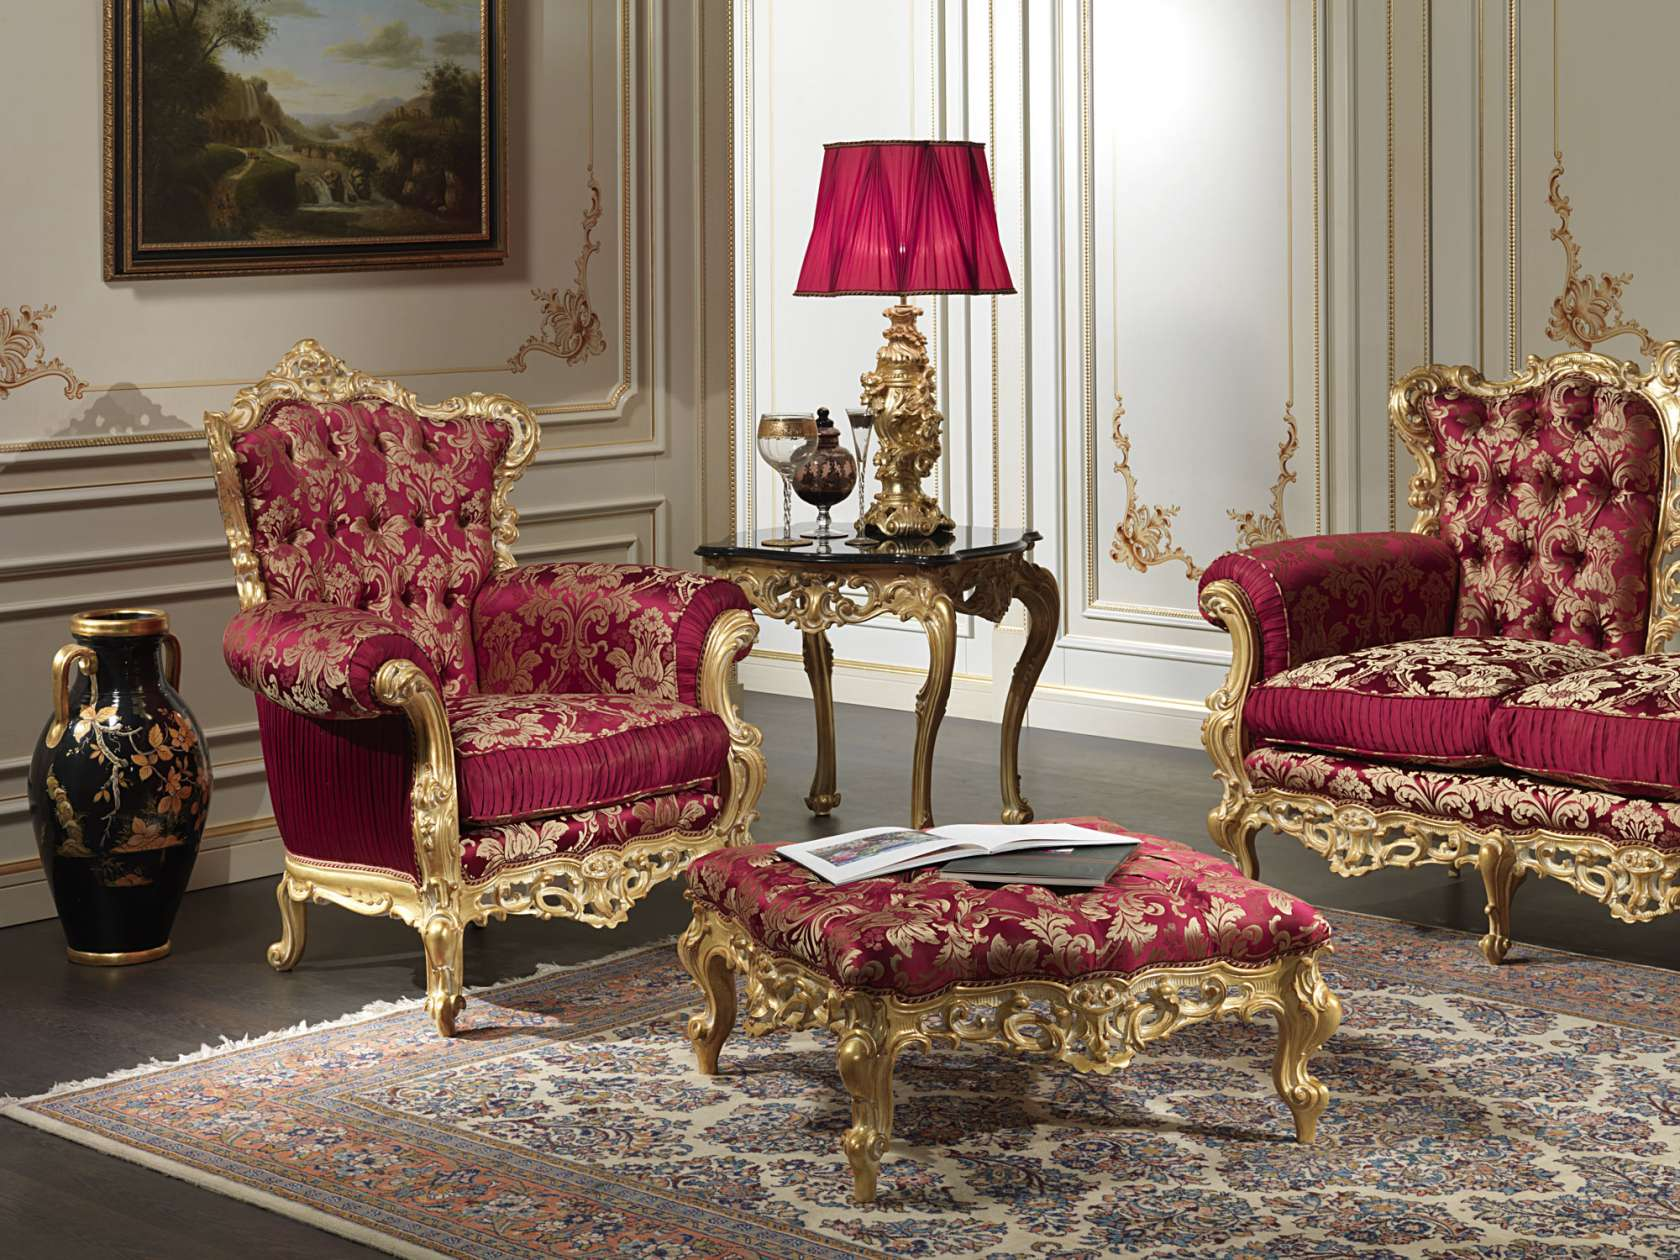 The Baroque Armchair Symbol Of Luxury